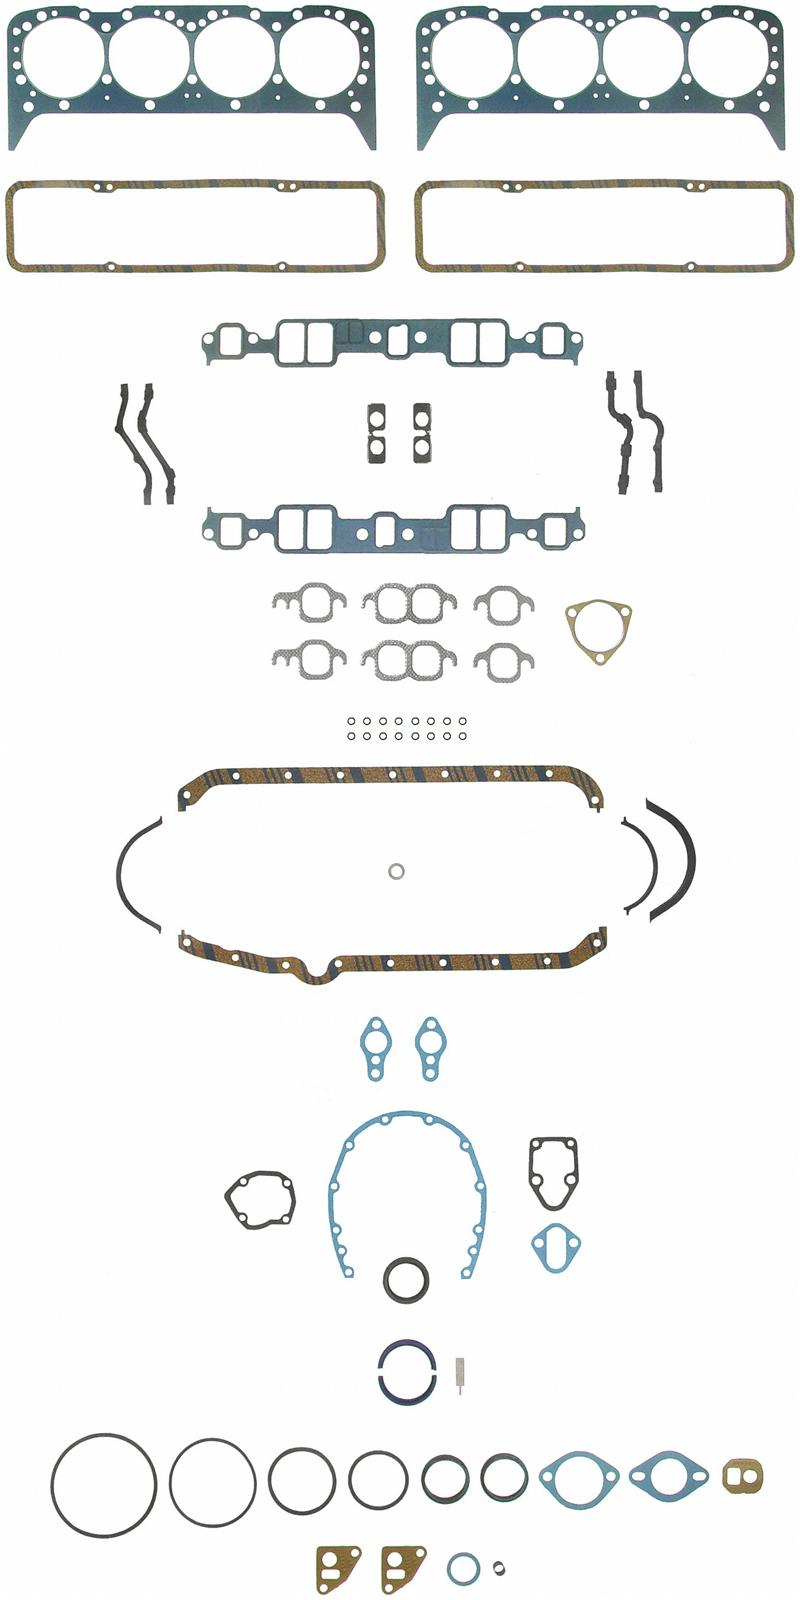 Felpro Engine Gasket Kits Sflfs7733pt2 Free Shipping On Orders. Felpro Engine Gasket Kits Sflfs7733pt2 Free Shipping On Orders Over 99 At Summit Racing. Chevrolet. Chevy 350 Engine Gasket Schematic At Scoala.co